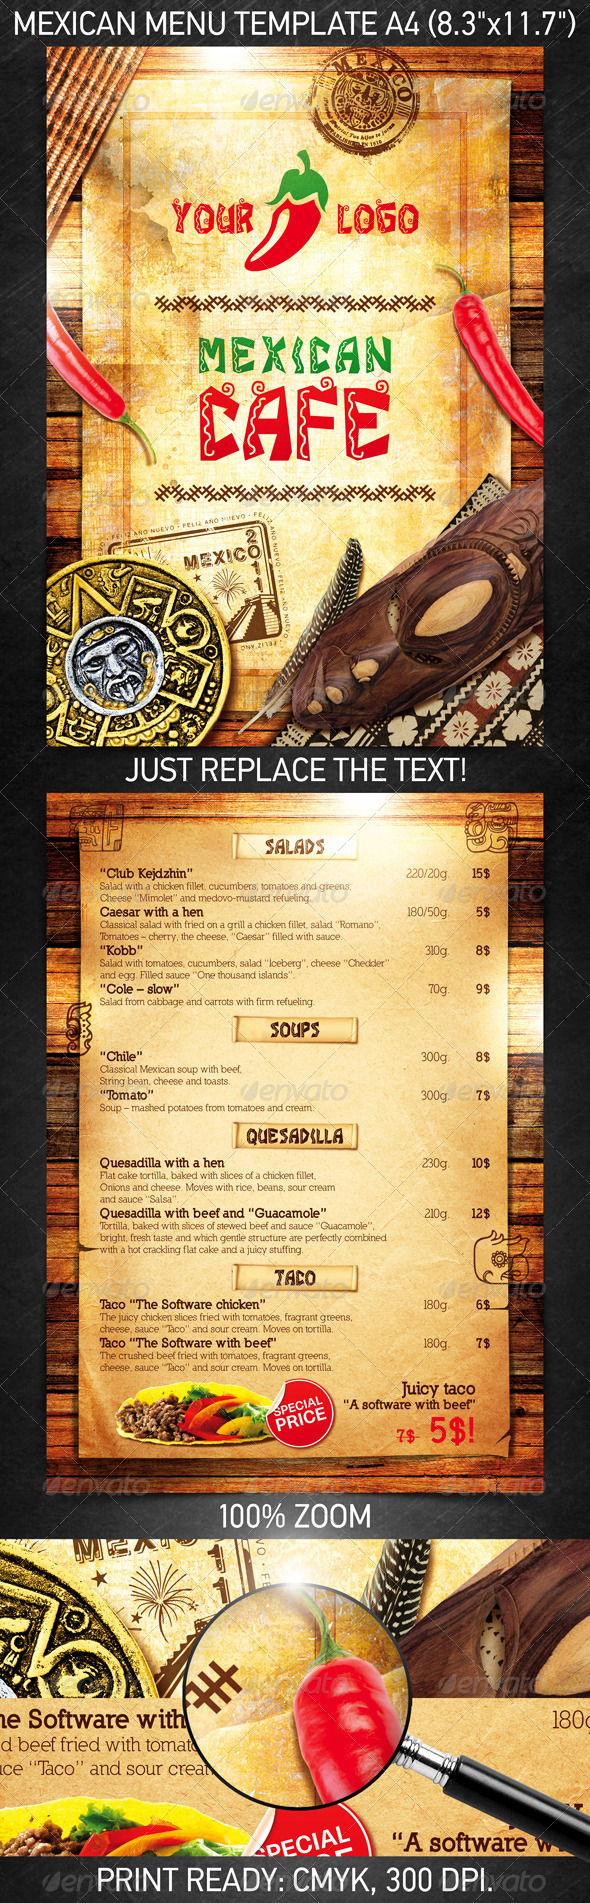 Mexican Menu Template Psd Template On Behance